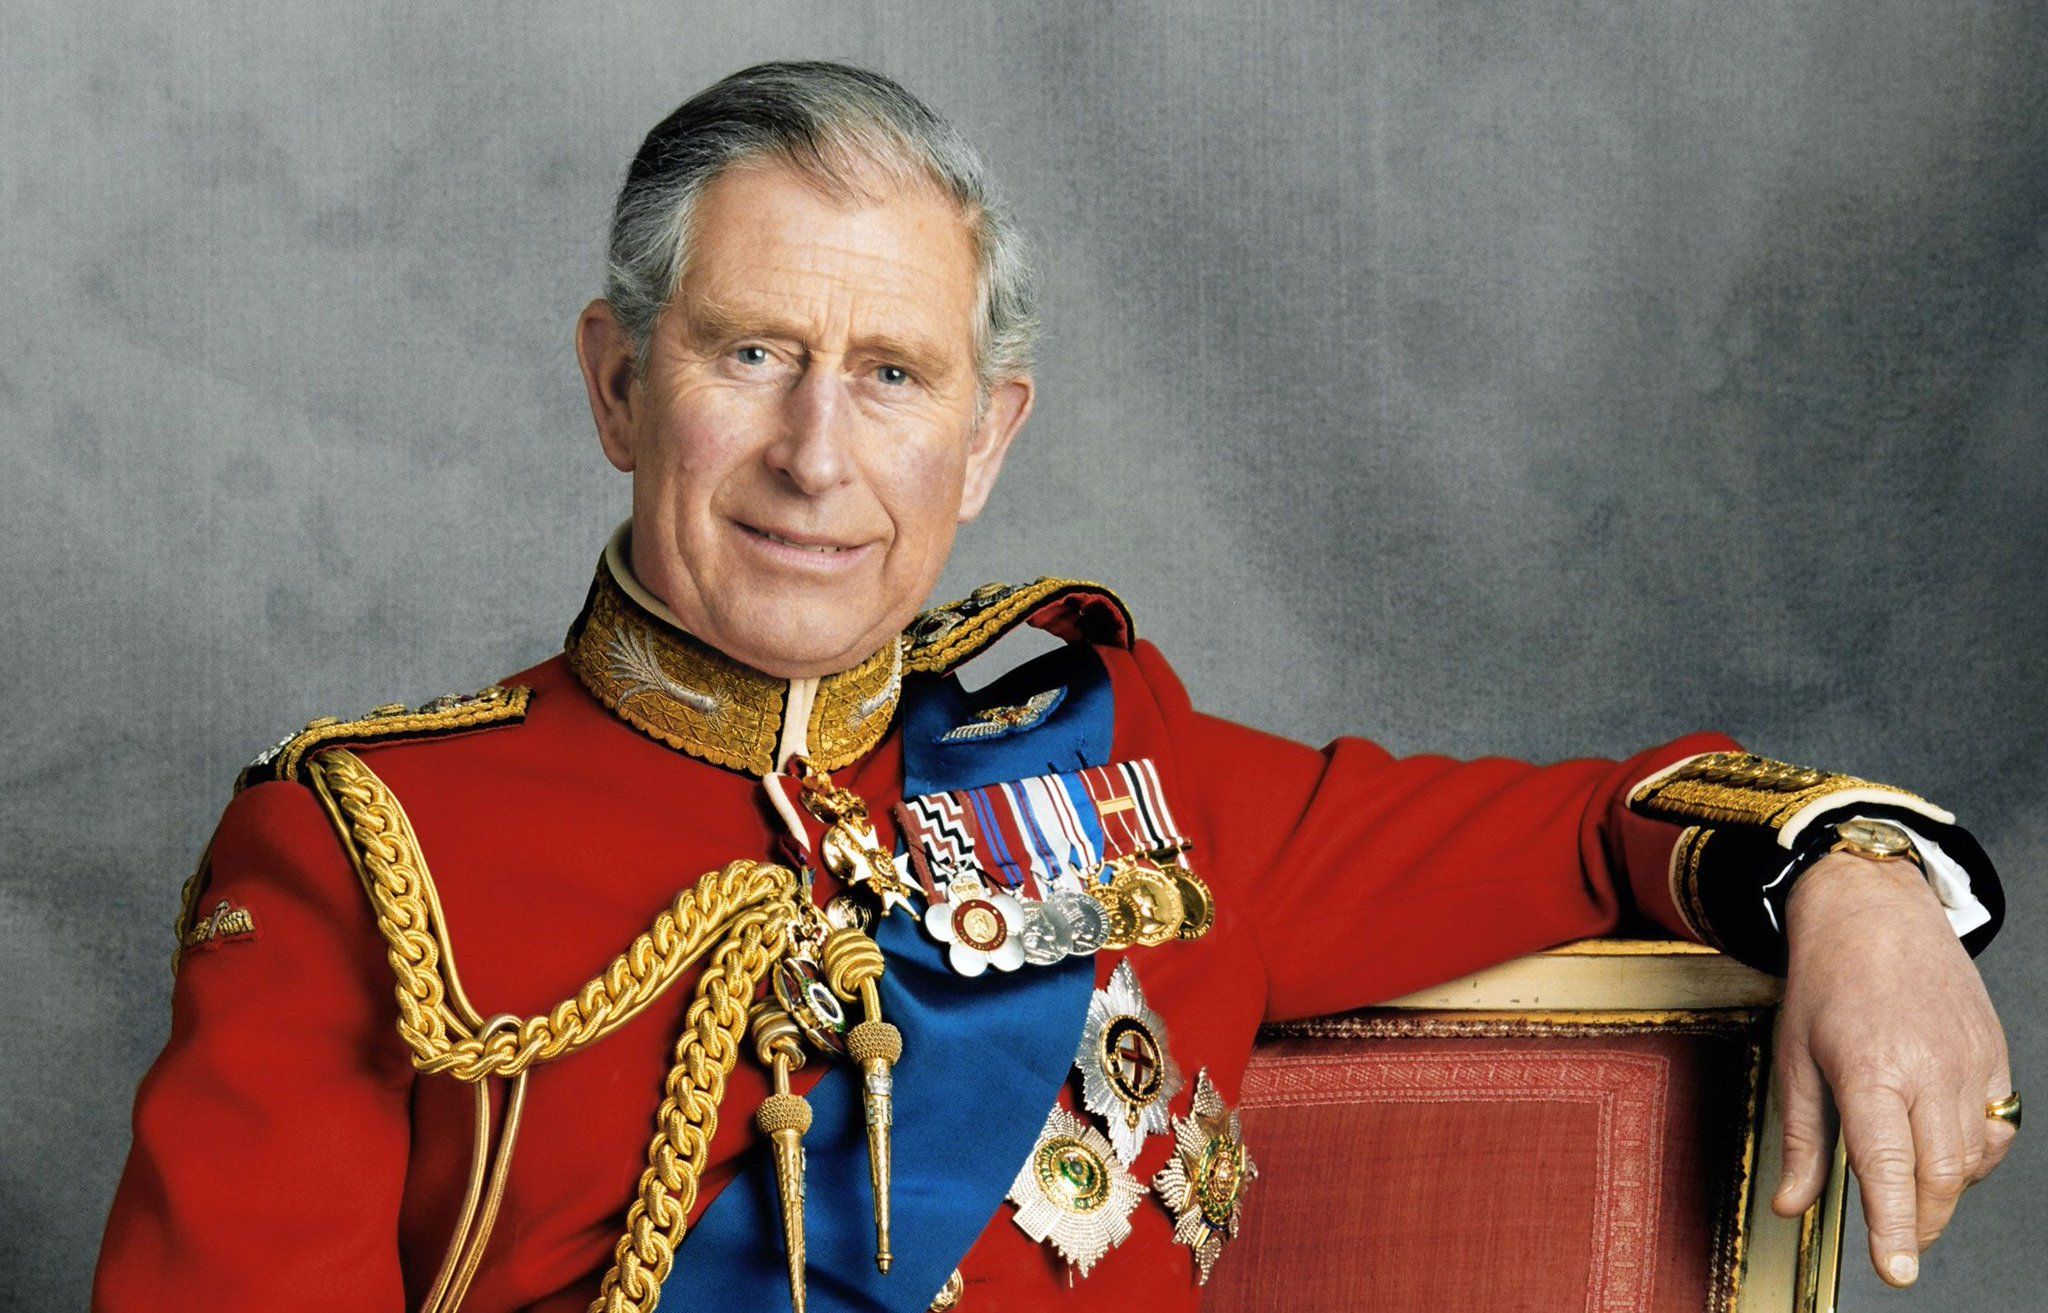 Today we celebrate the birthday of HRH Prince Charles, who turns 68 today many happy returns.